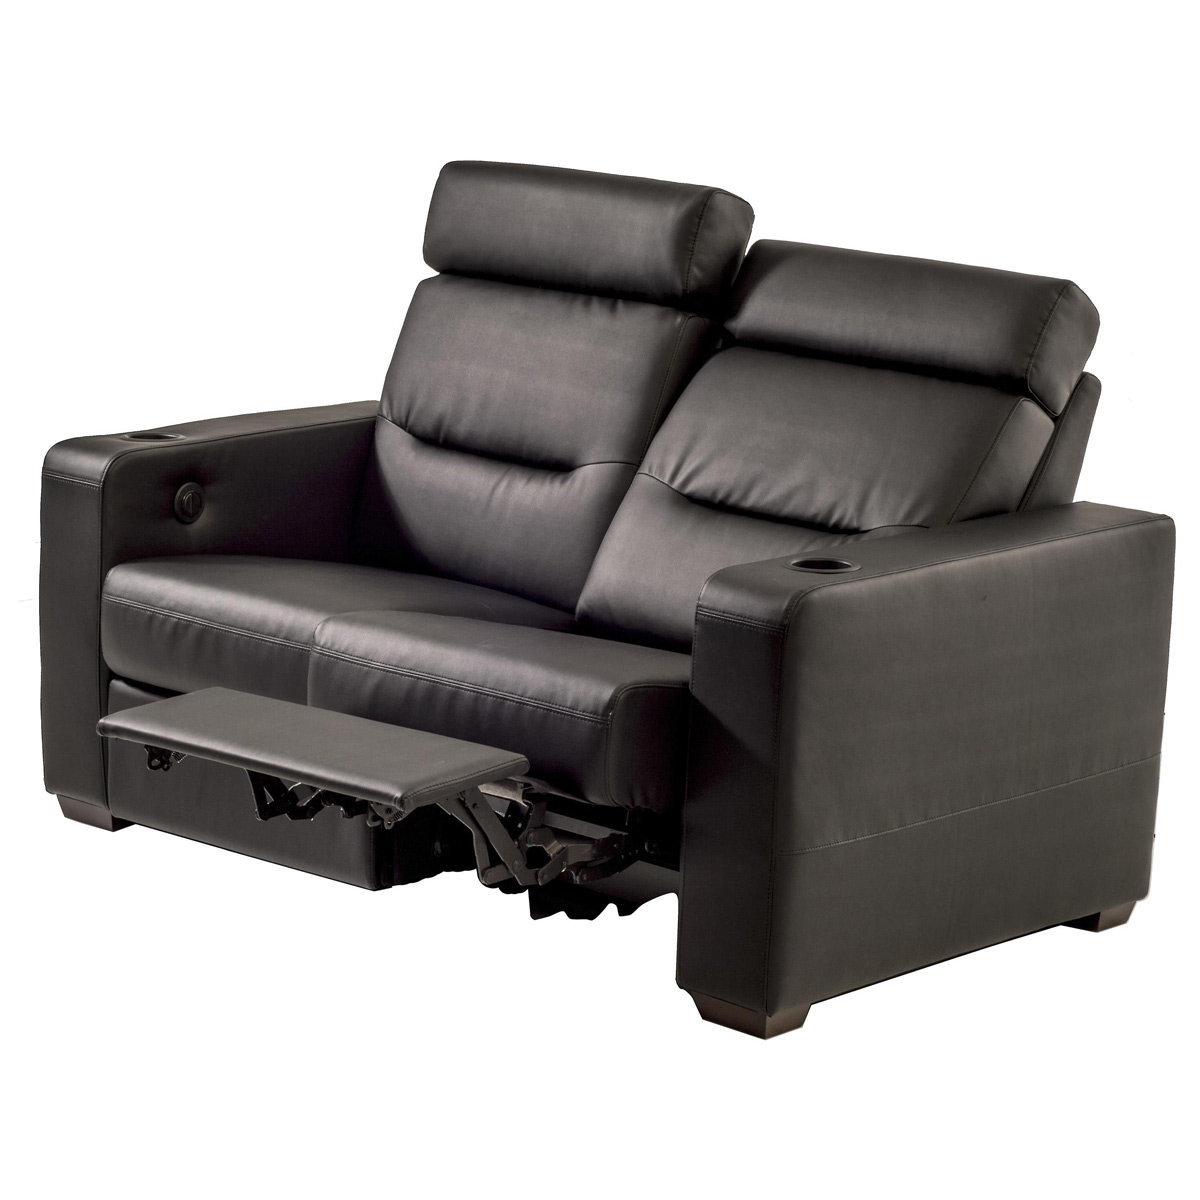 leather seating seater loveseat chairs style home sofa theater media single theatre movie couches for ht lounge recliner recliners furniture room entertainment cinema sale black